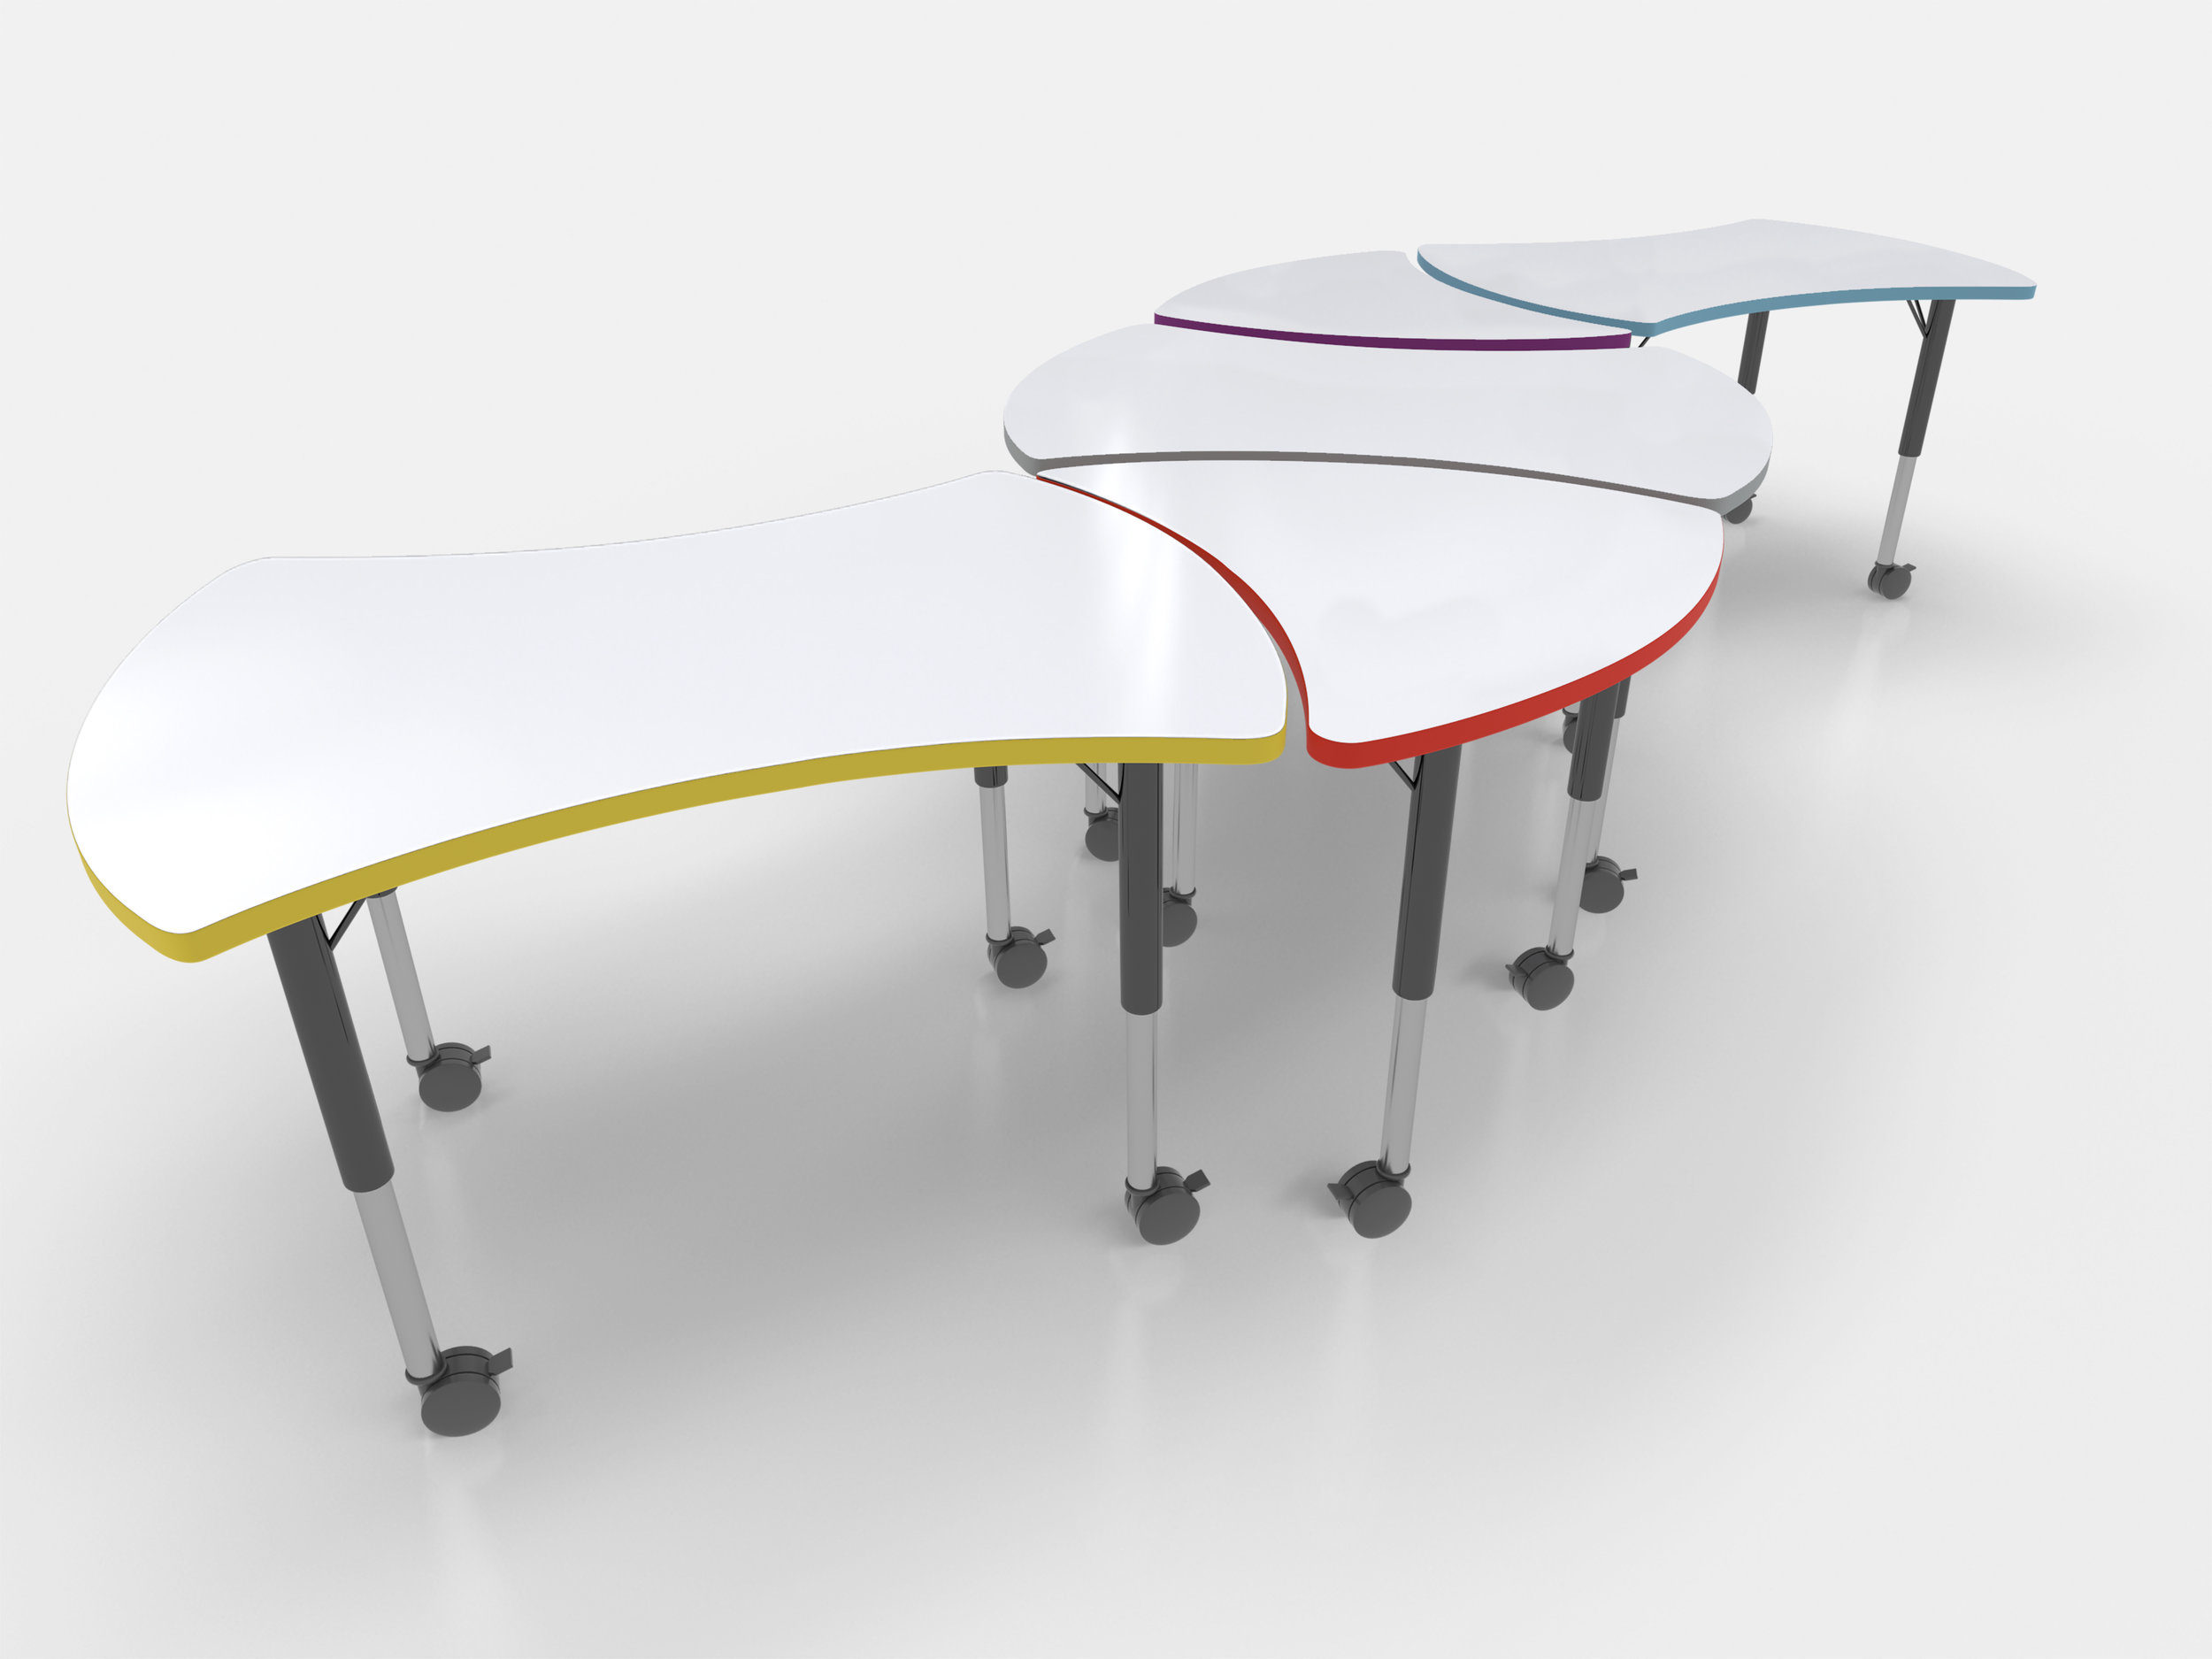 Nesting Tables - The CEF dry erase nesting tables with adjustable height legs are genius just like your students! Allowing students the freedom to write, draw or solve problems on a dry erase surface cultivates creativity and encourages students to become more confident in their work. For teachers, the fun and easy part of these modular nesting tables is to create shapes or groups in your classroom that fit your teaching style. So have fun, and teach well!